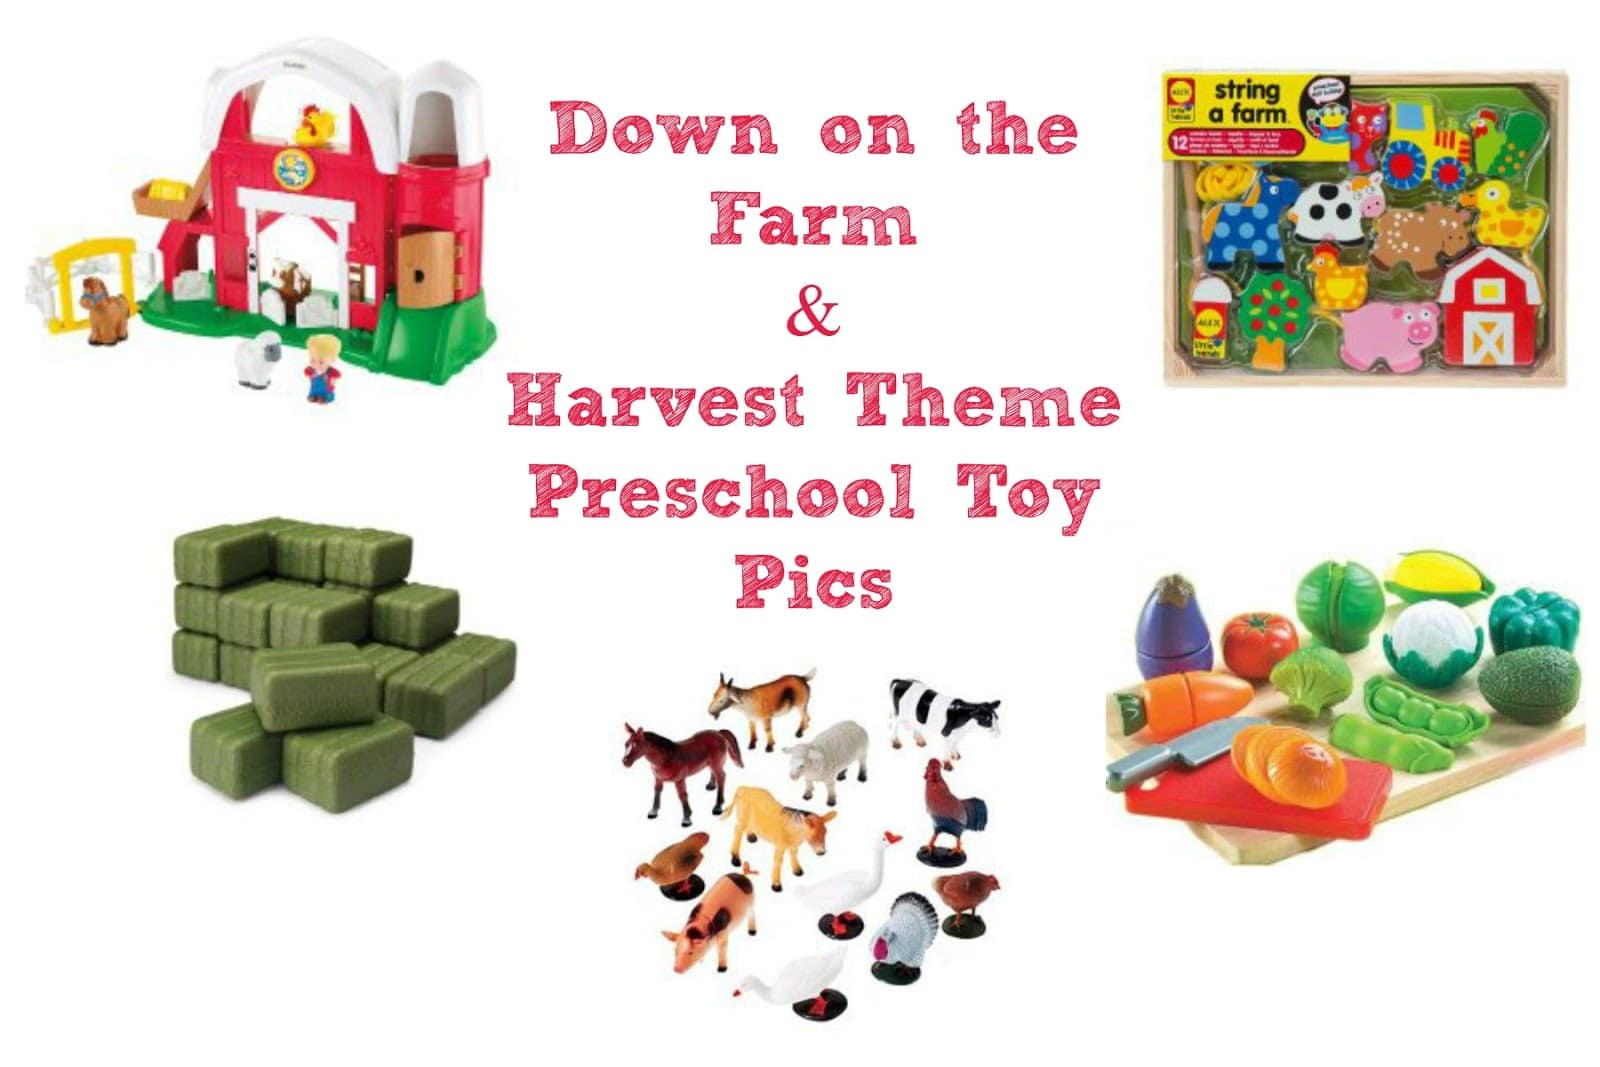 Preschool Toy Pics for Farm and Harvest Themes